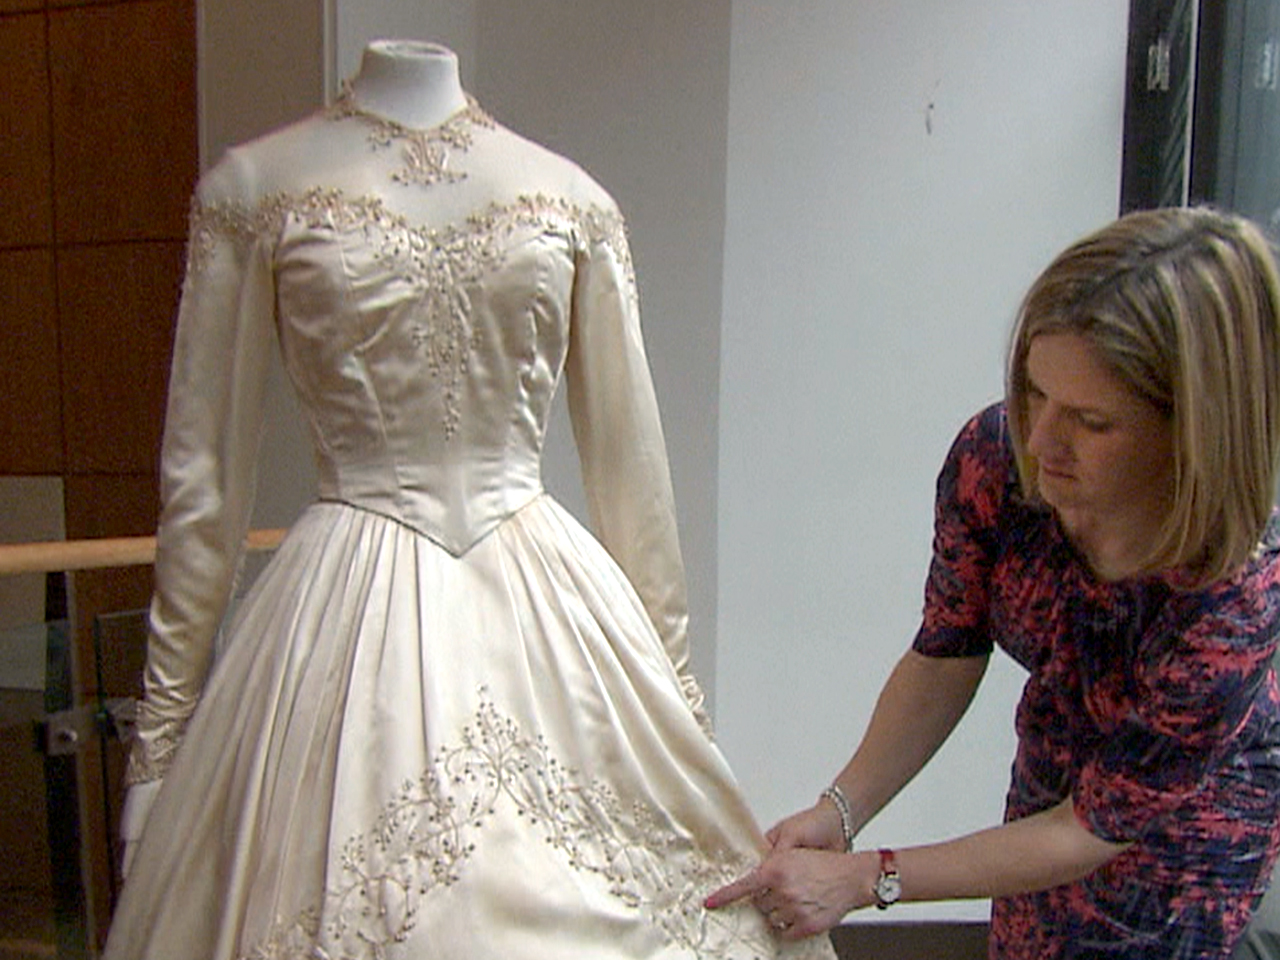 Elizabeth Taylors First Wedding Dress Up For Auction